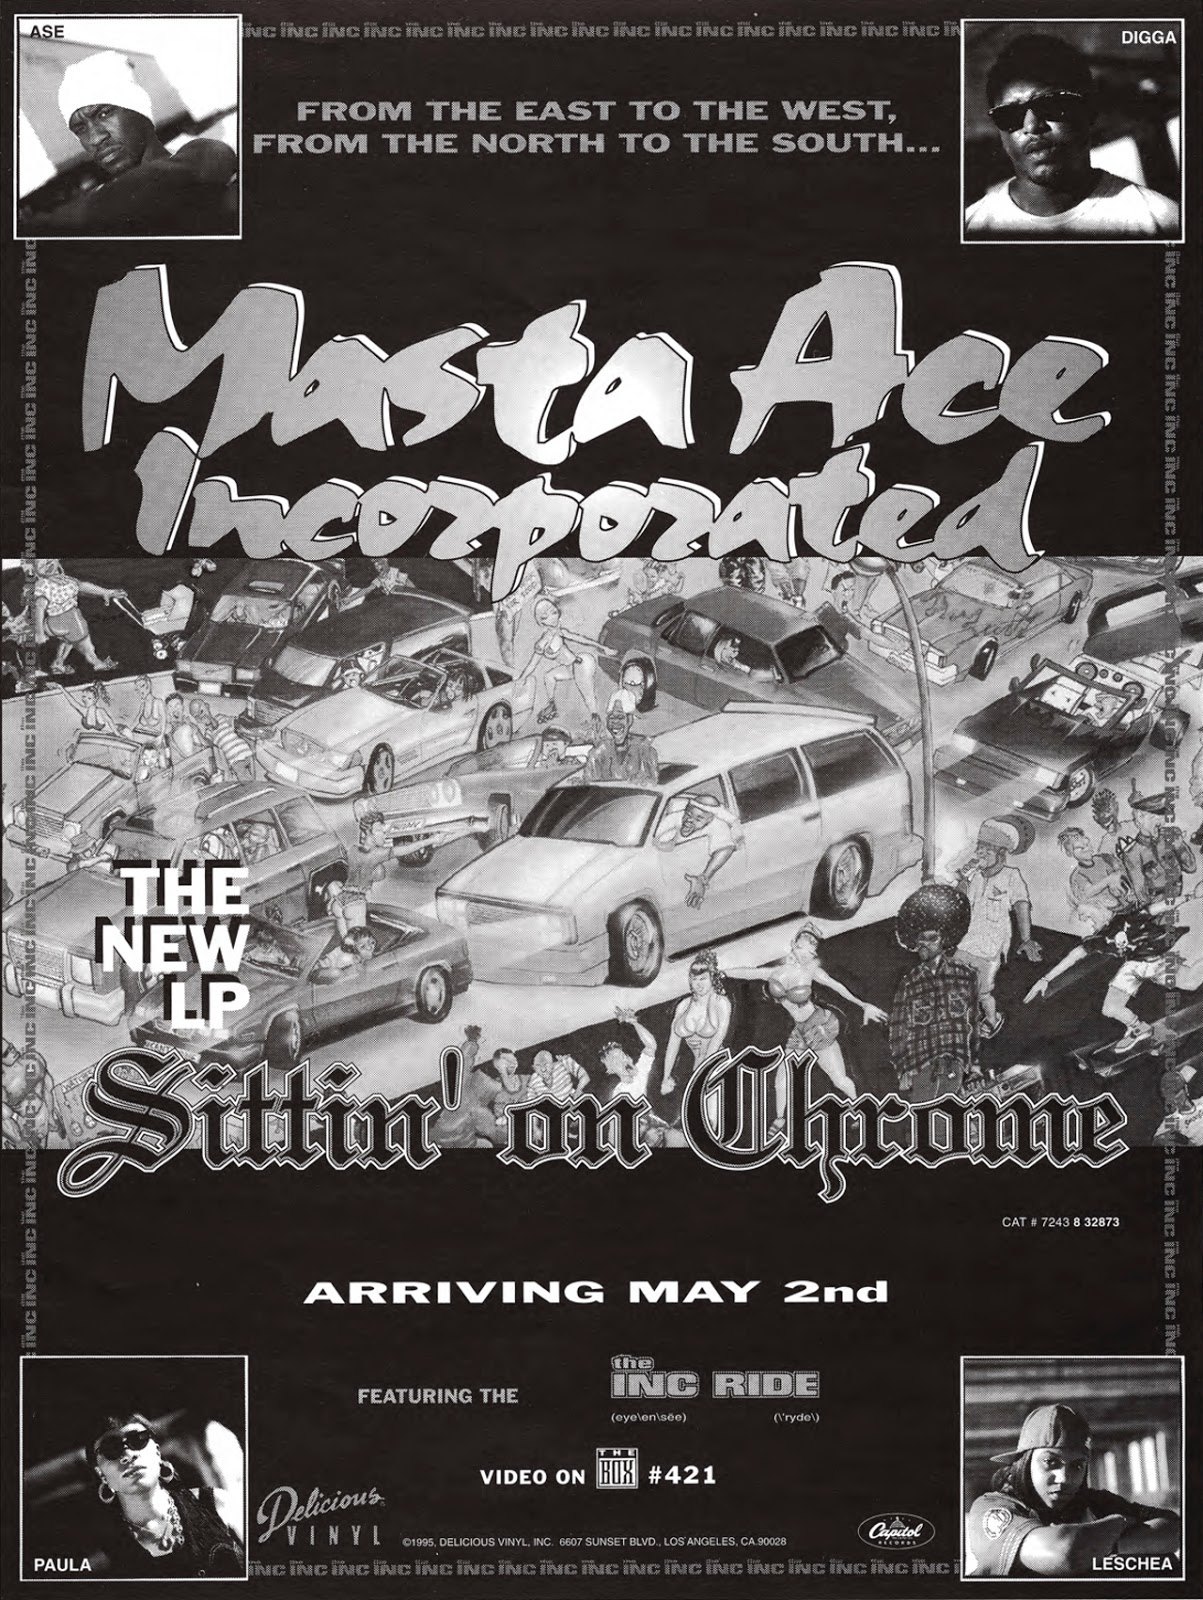 Masta Ace Incorporated 'Sittin on Chrome' (5/2/95)